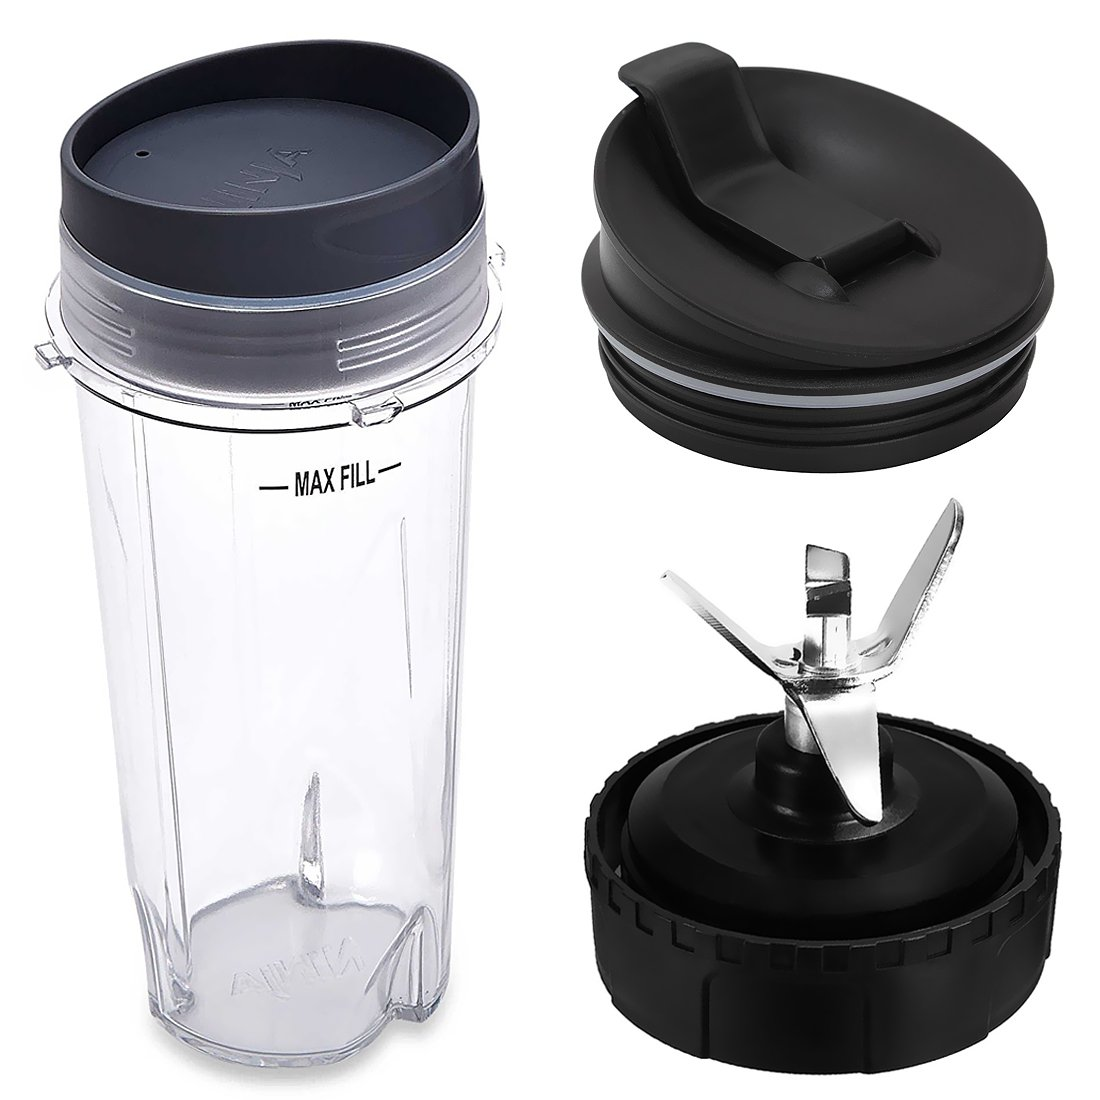 Pard Replacement Parts for Nutri Ninja Blender, Replacement Blade Assembly with 6 Fins on Bottom, 16 oz Cup with Lid and Seal Lid for Nutri Ninja Blender System BL770 BL771 BL773CO.